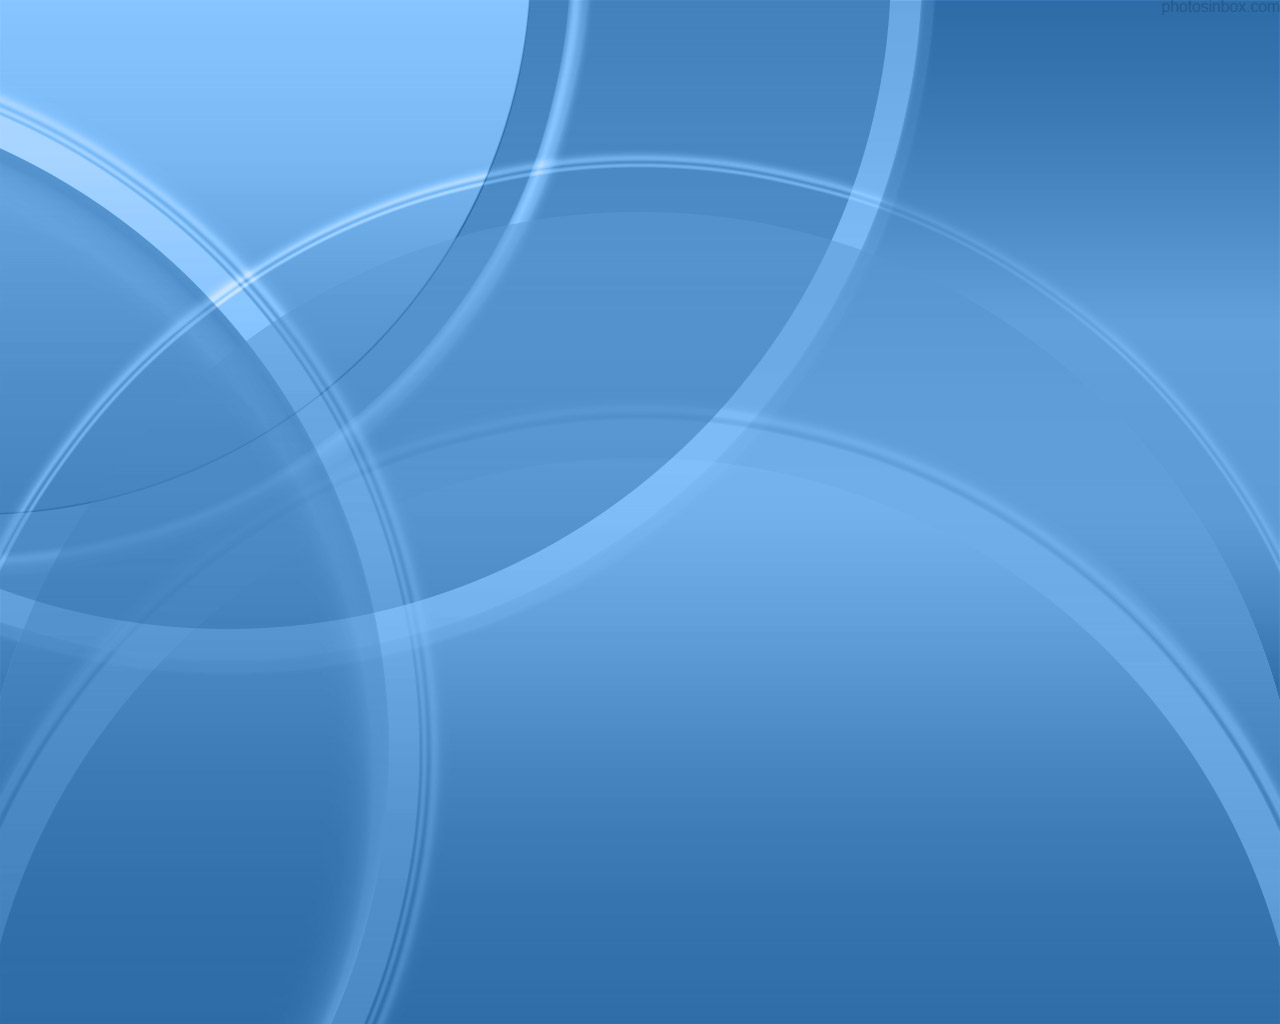 Enlarge Background 1280x1024px Abstract blue background 1280x1024